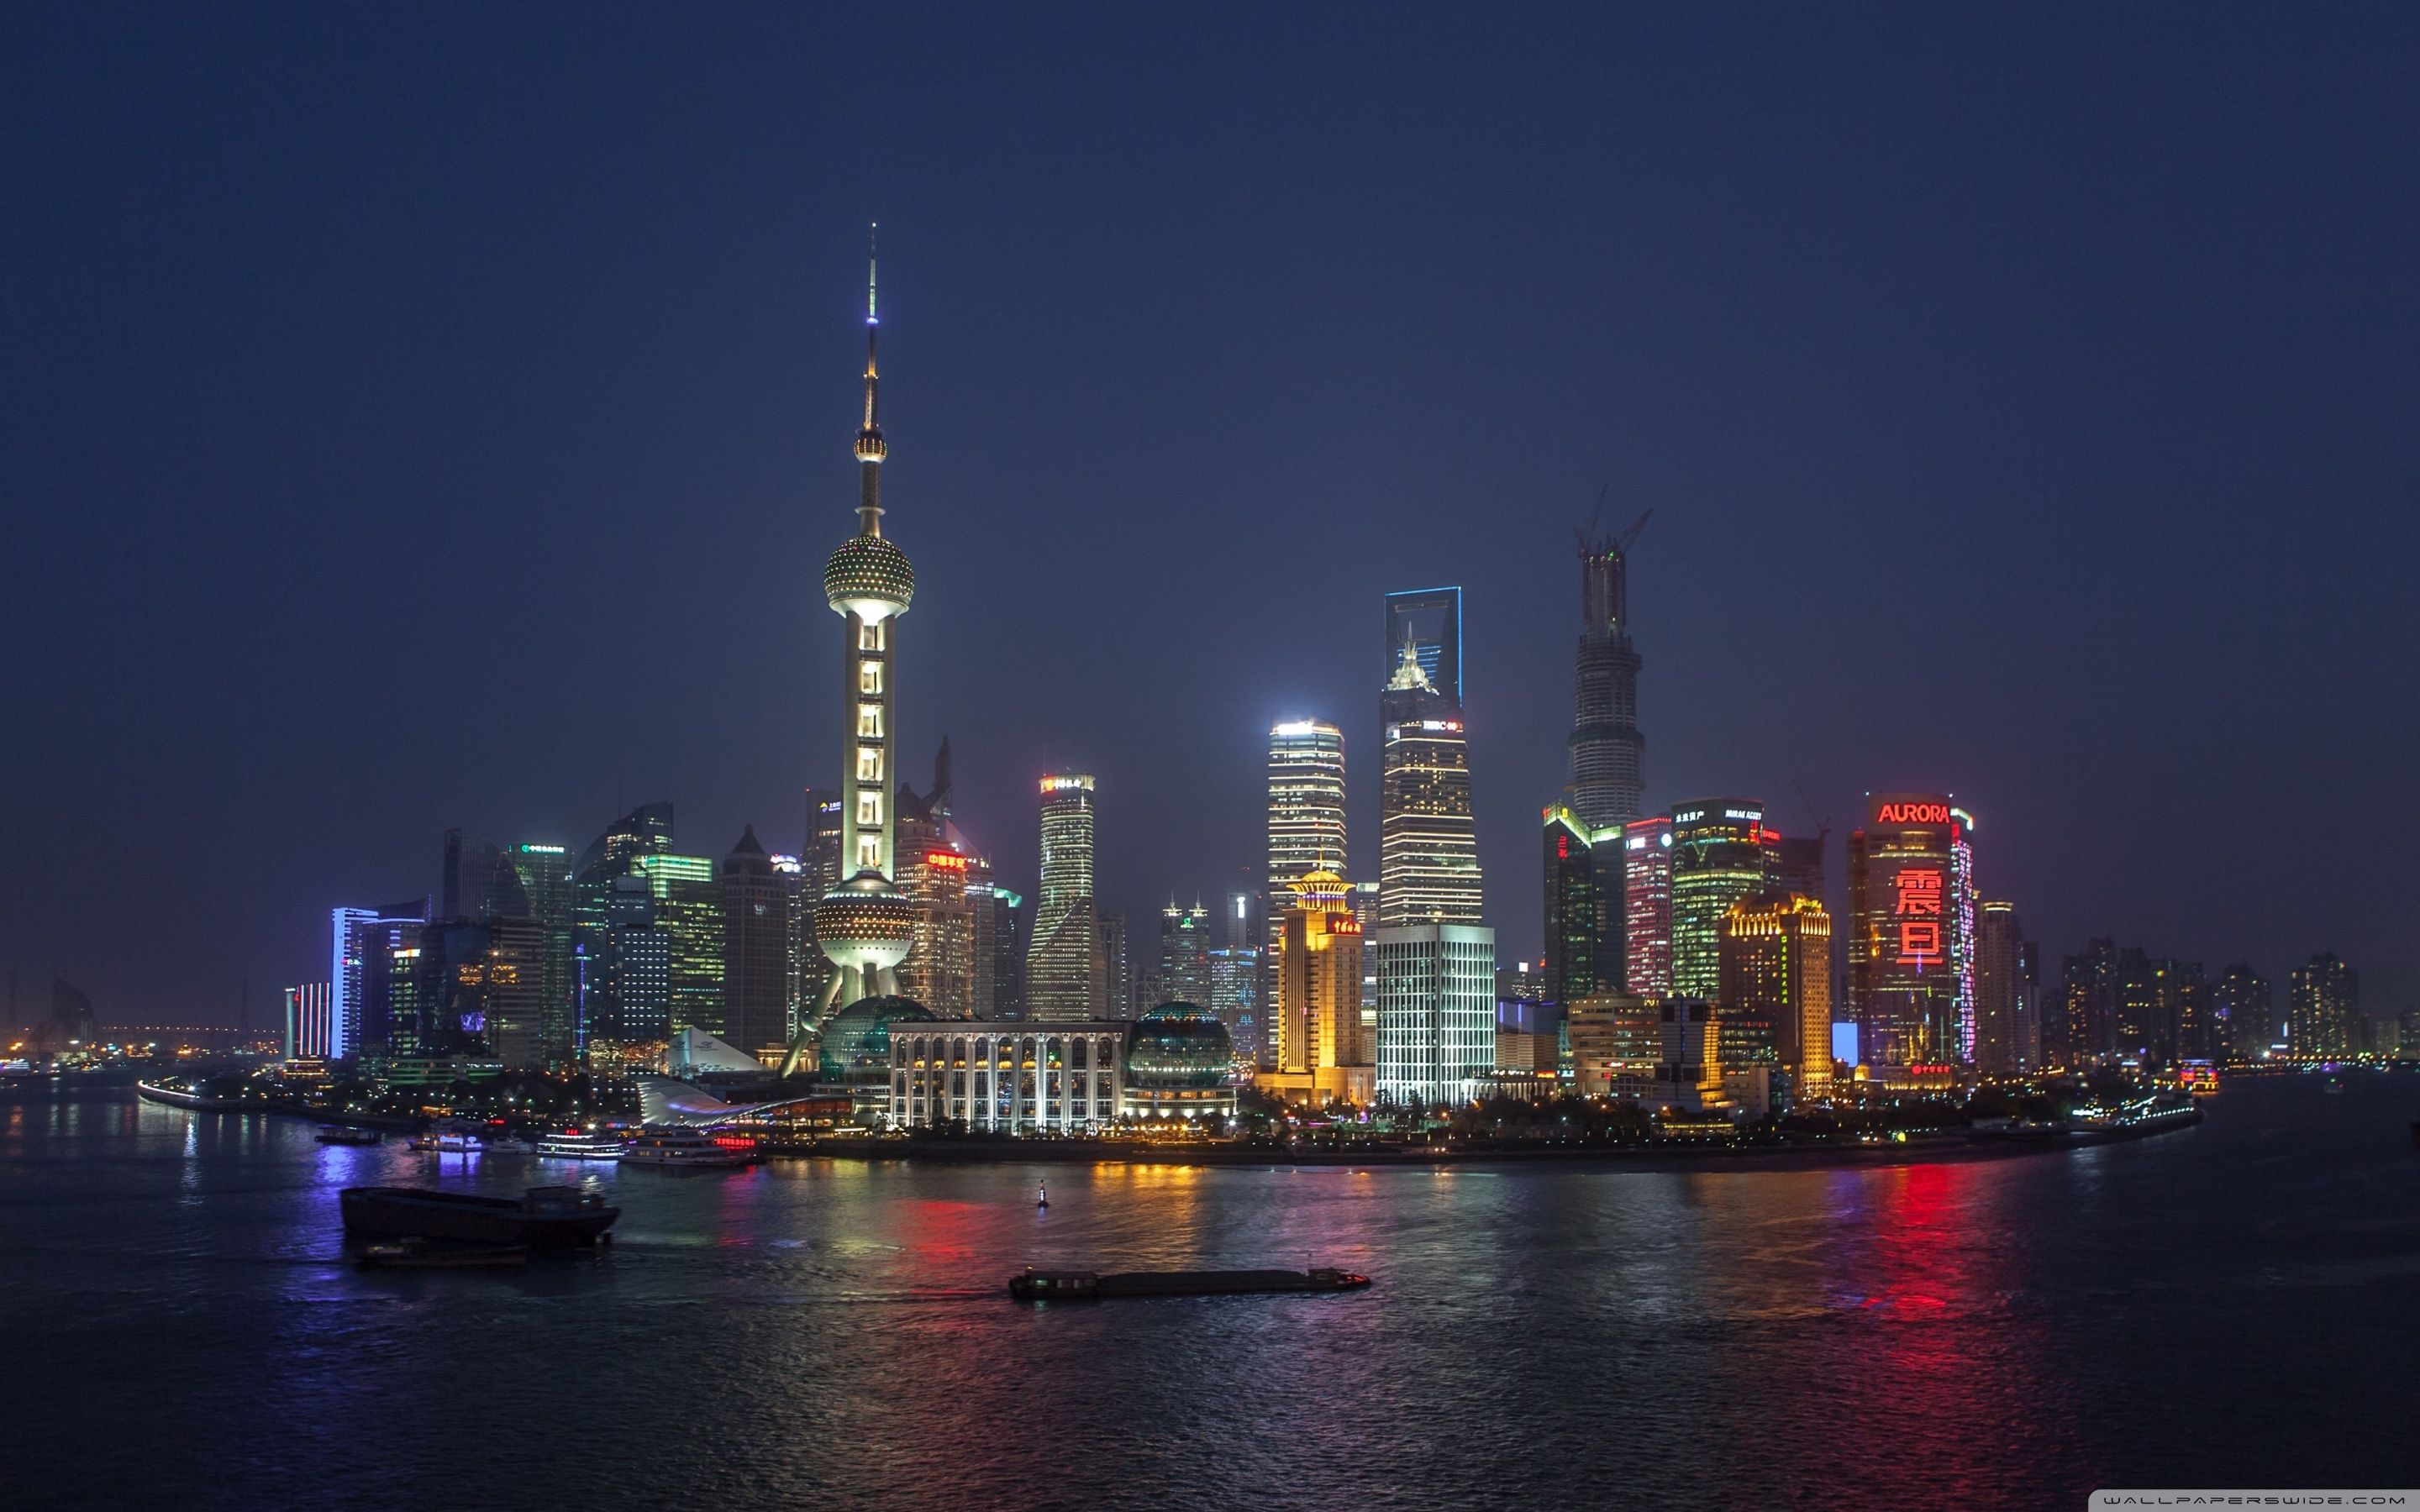 2880x1800 Shanghai China Skyline ❤ 4K HD Desktop Wallpaper for 4K Ultra HD TV .